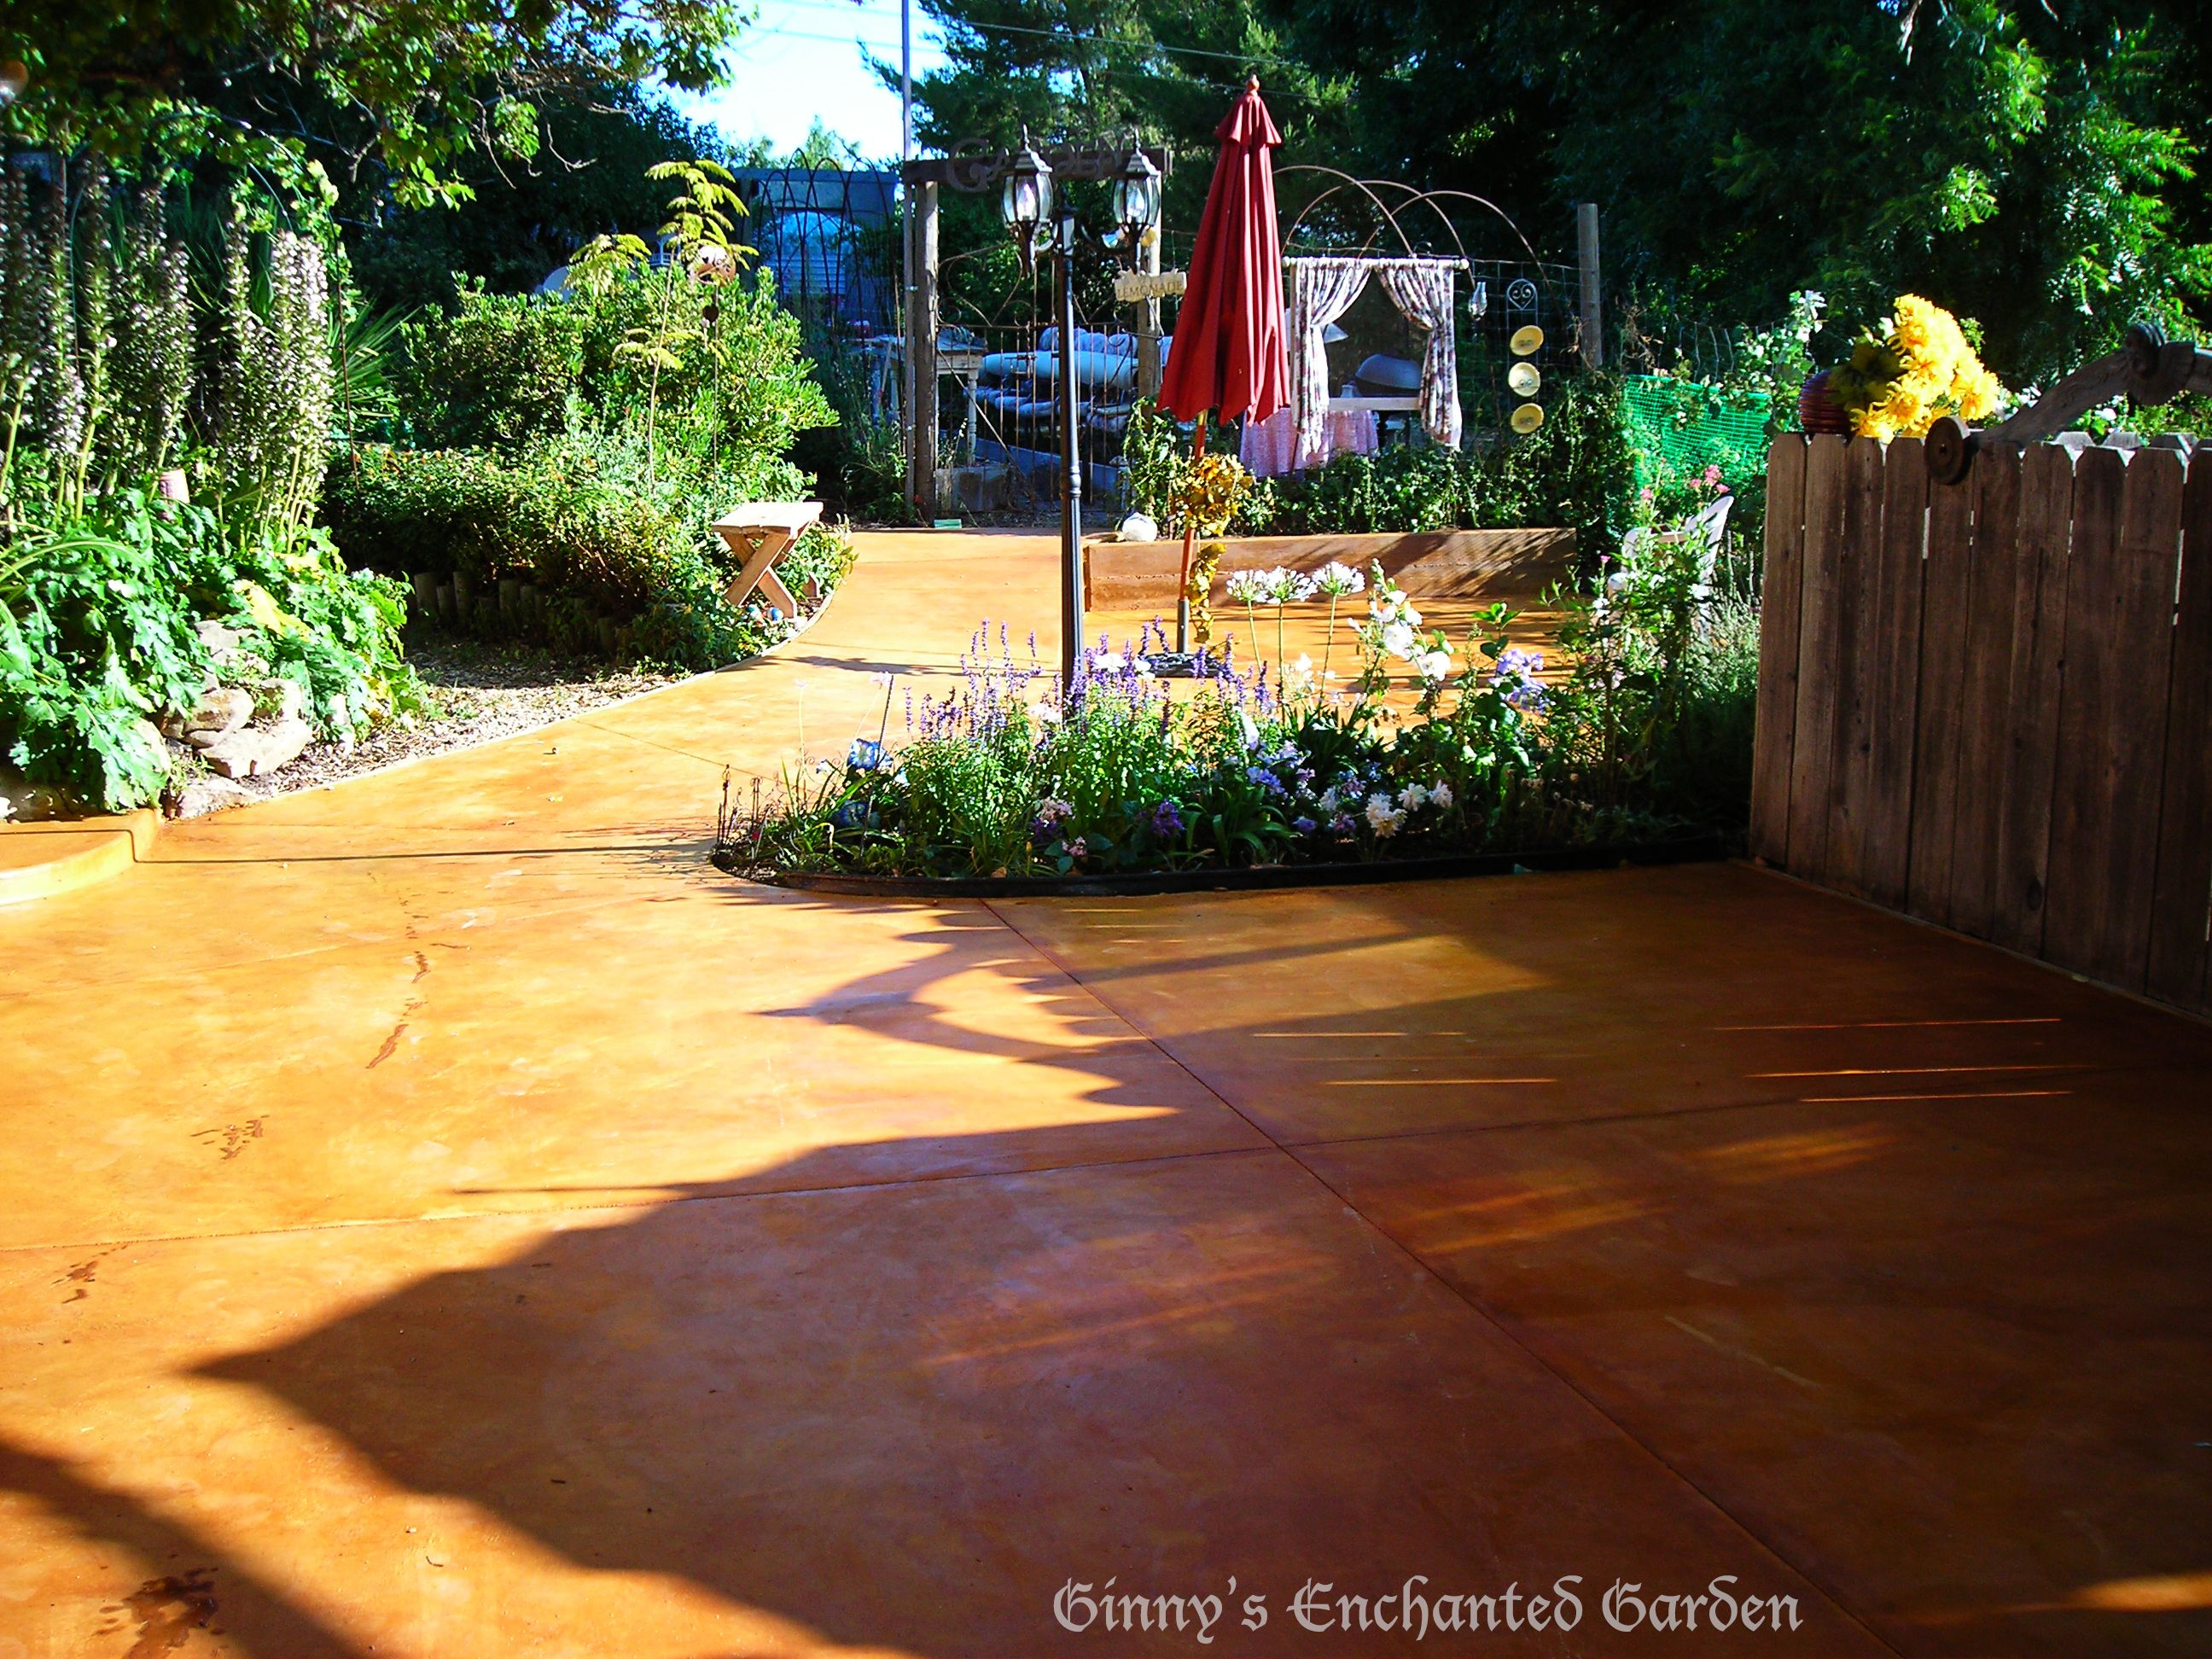 i had a concrete patio poured and stained it with ferrous sulphate